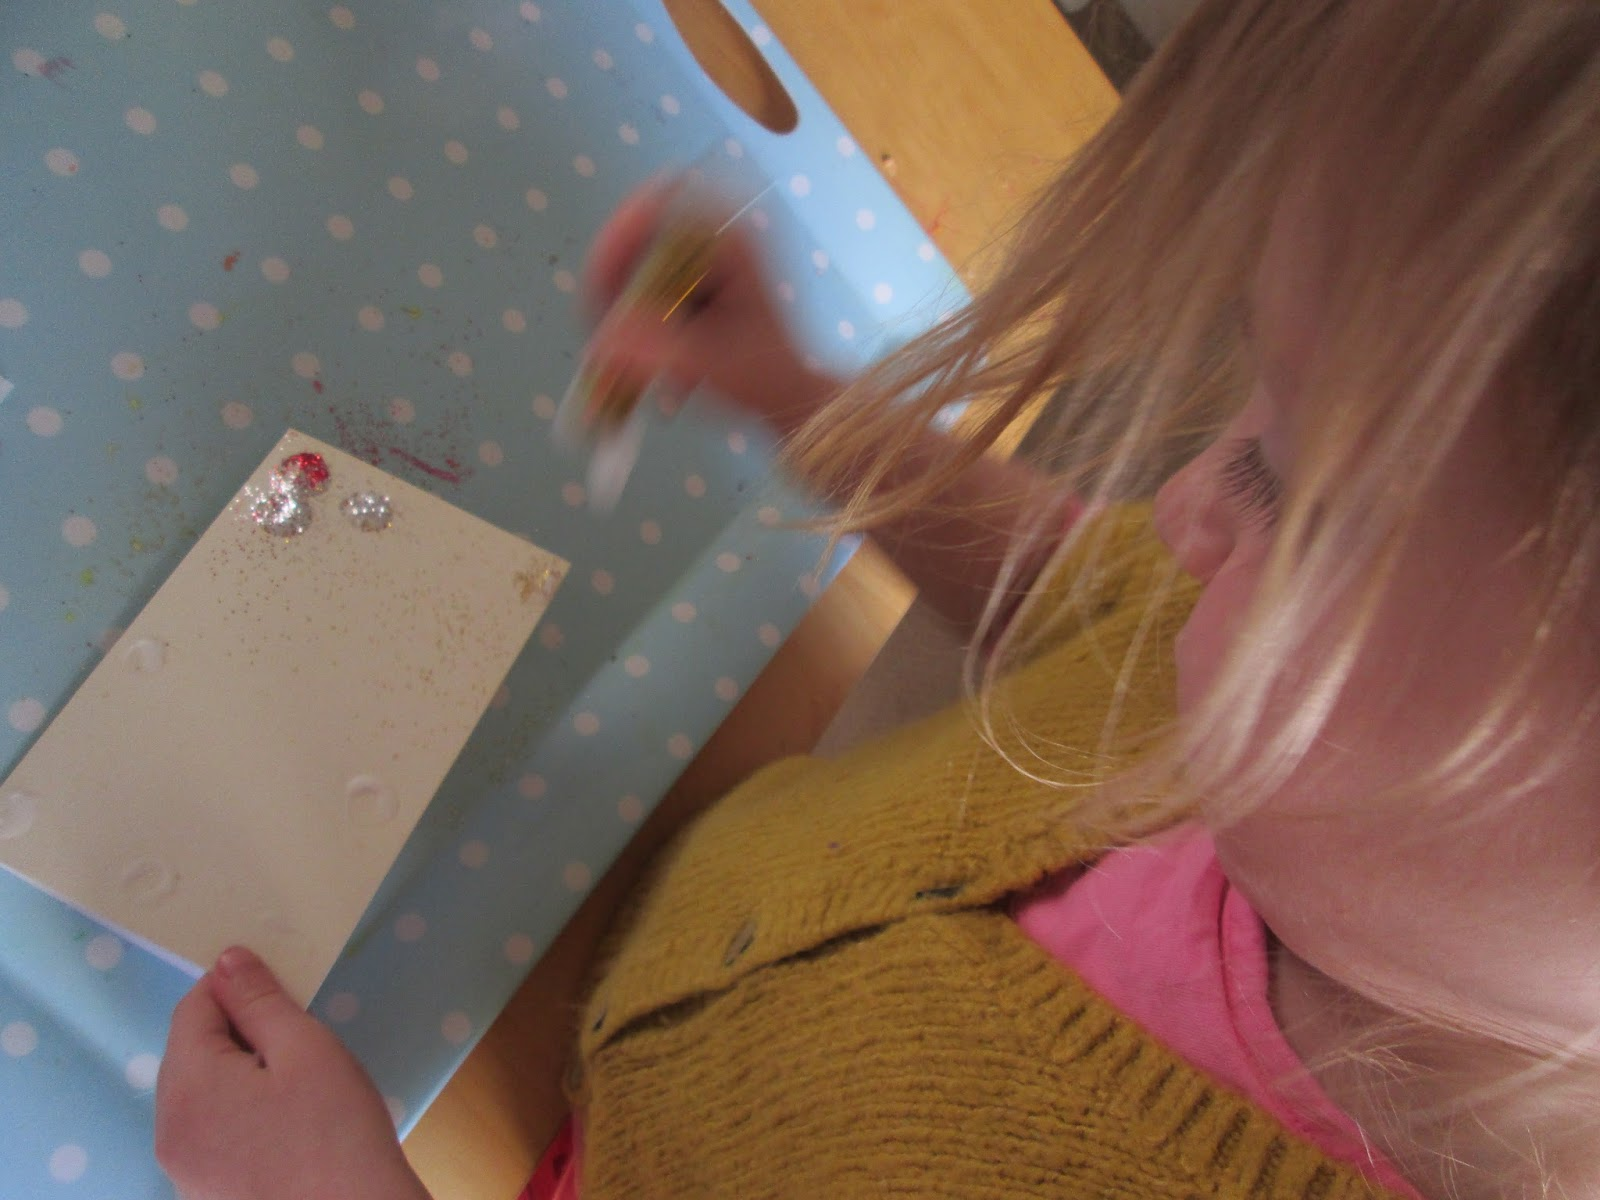 Lily shaking glitter all over the card